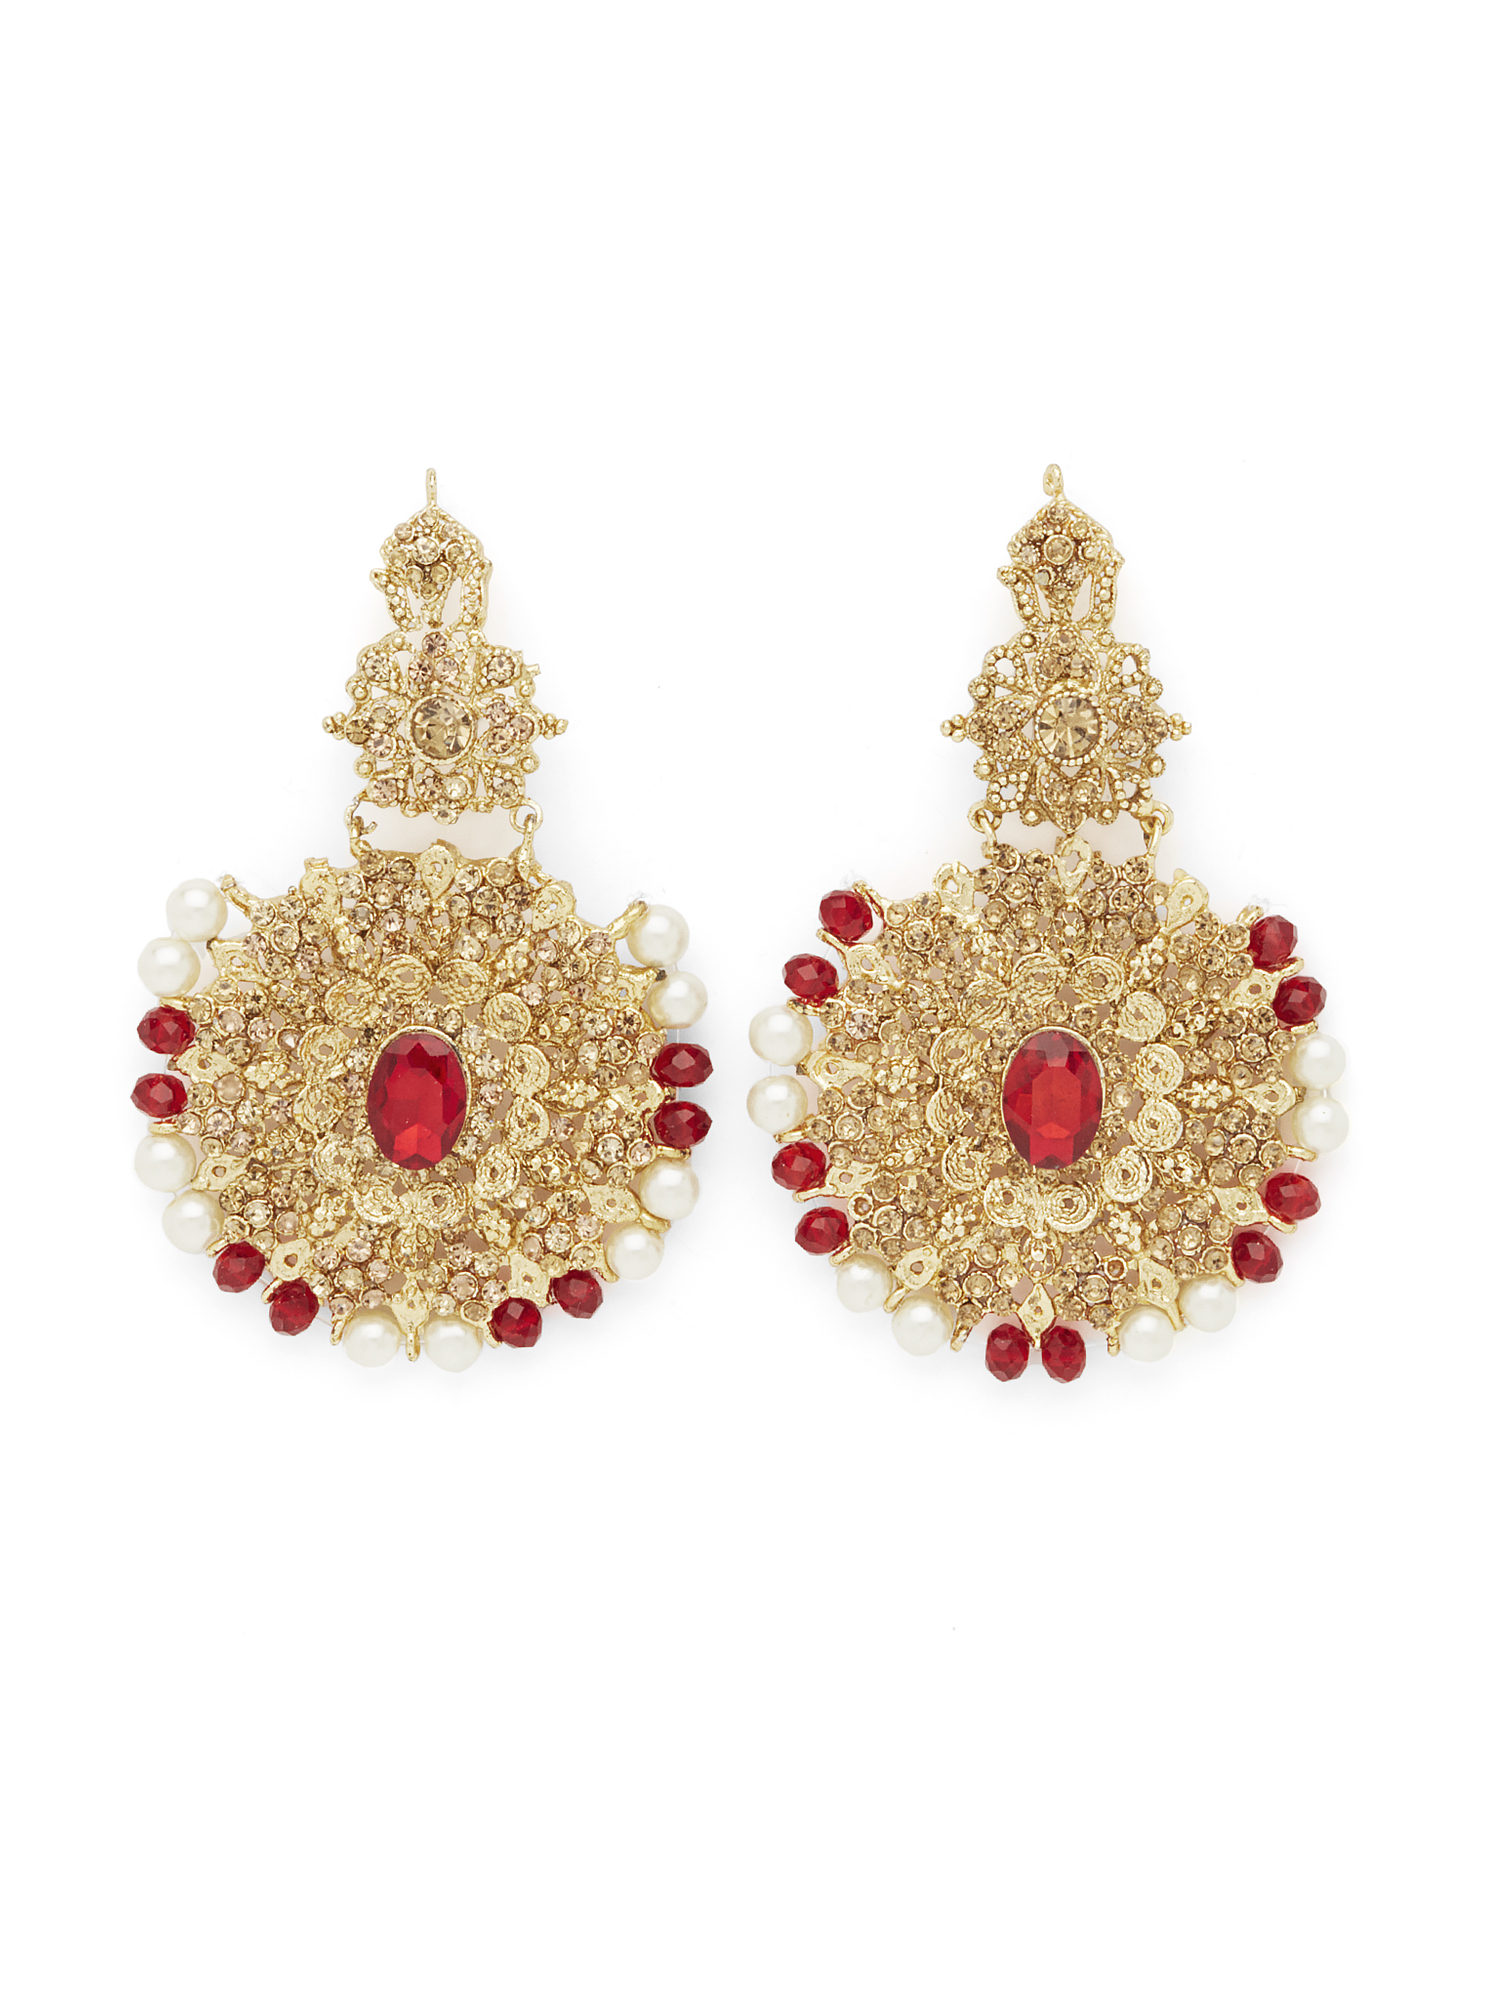 jewellery occassions index special earrings ruby gold teardrop and red